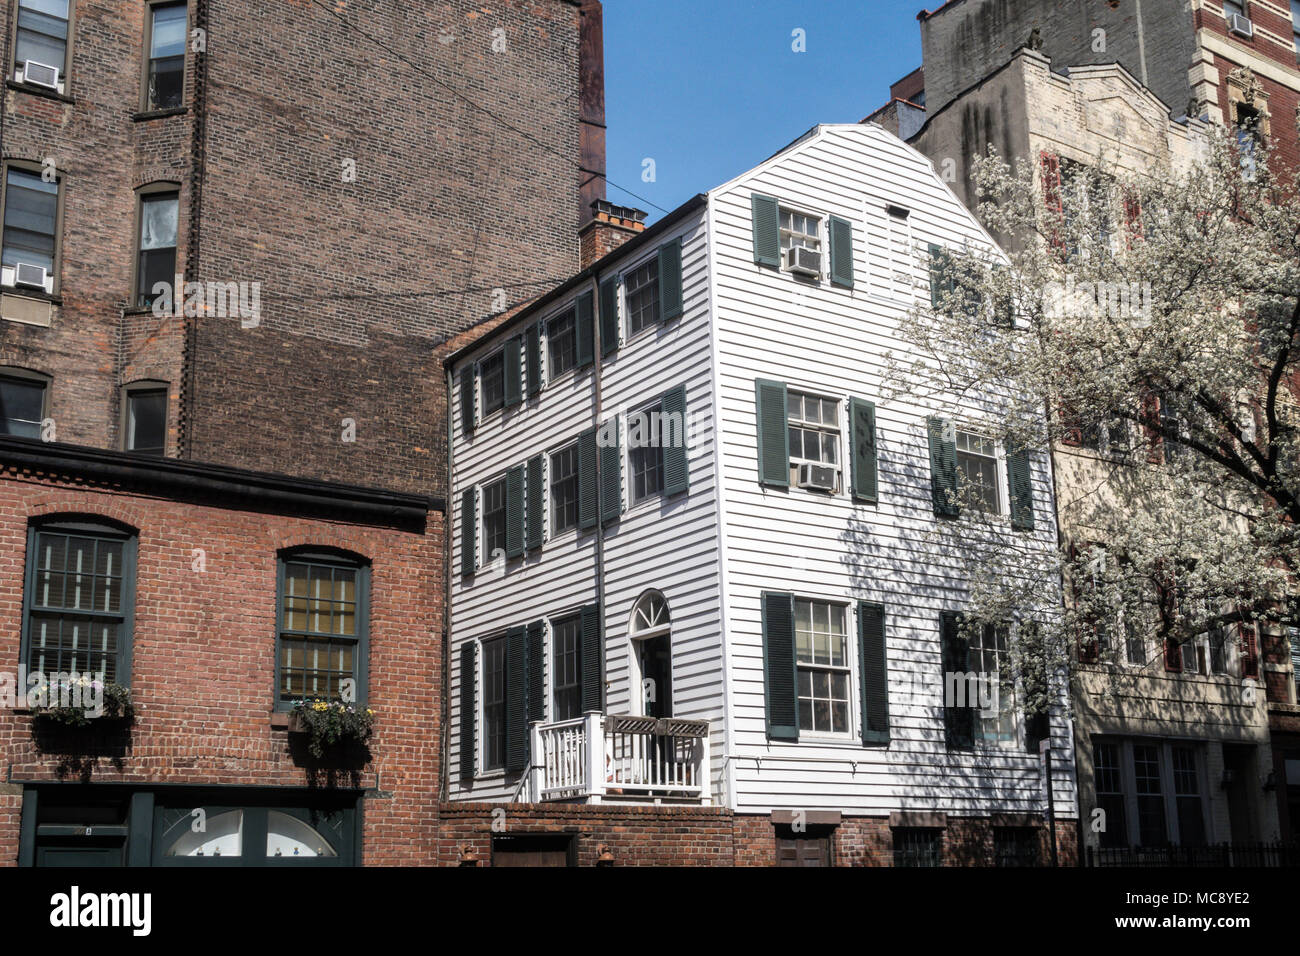 Wooden Farmhouse on East 29th Street, New York City, USA Stock Photo